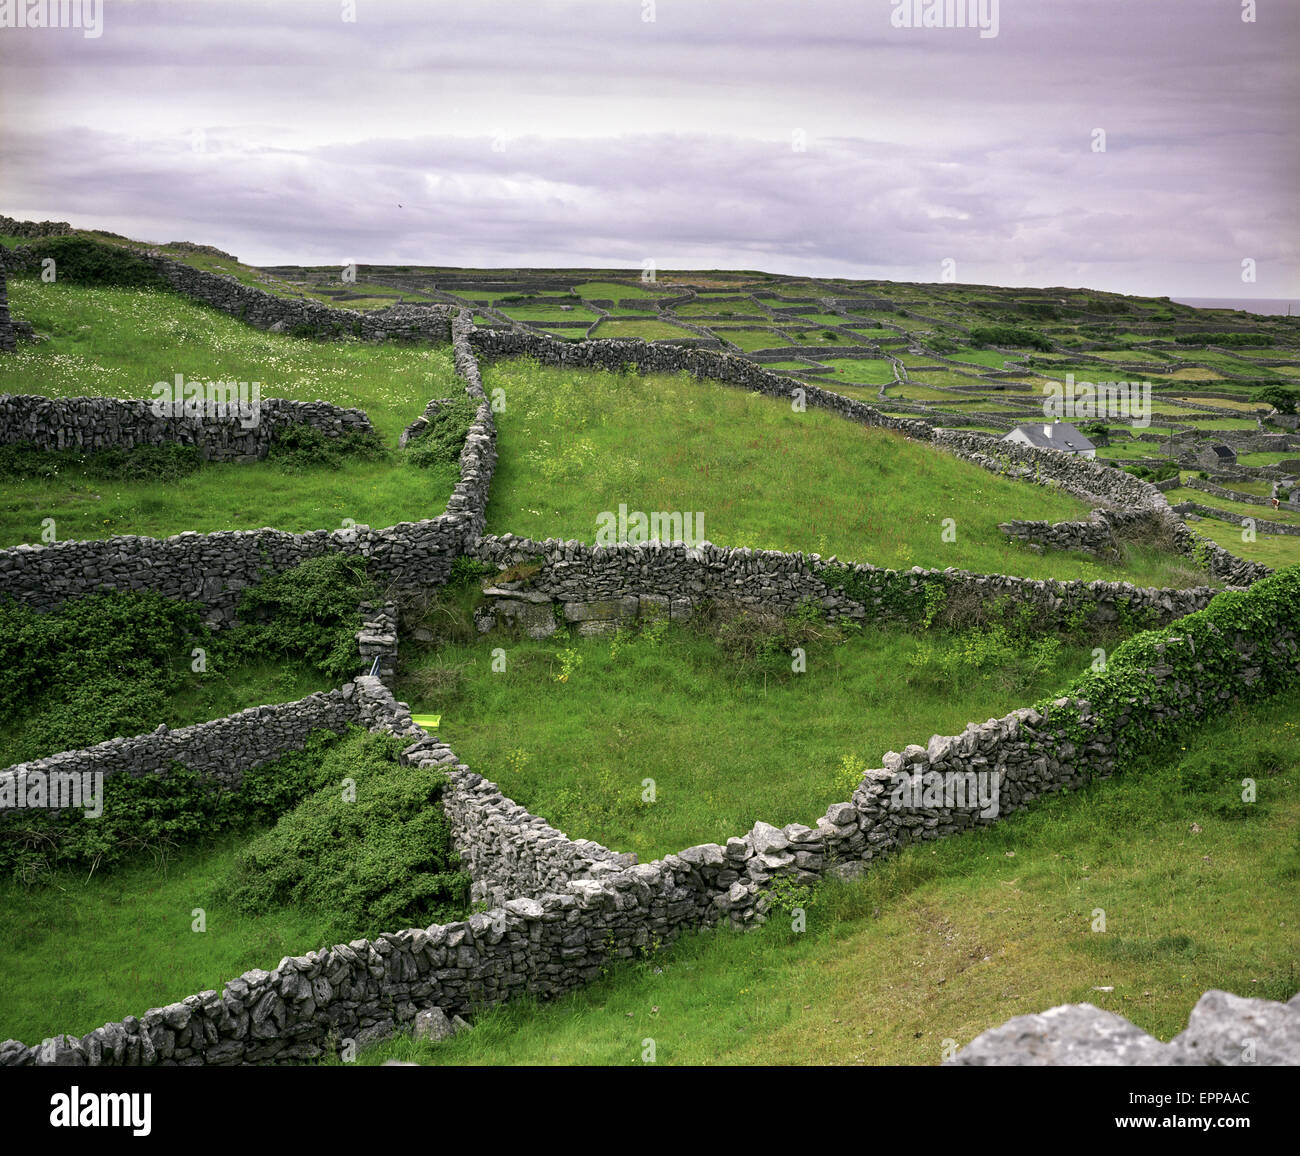 Stonewalls on the island of Inis Orr, Ireland. - Stock Image